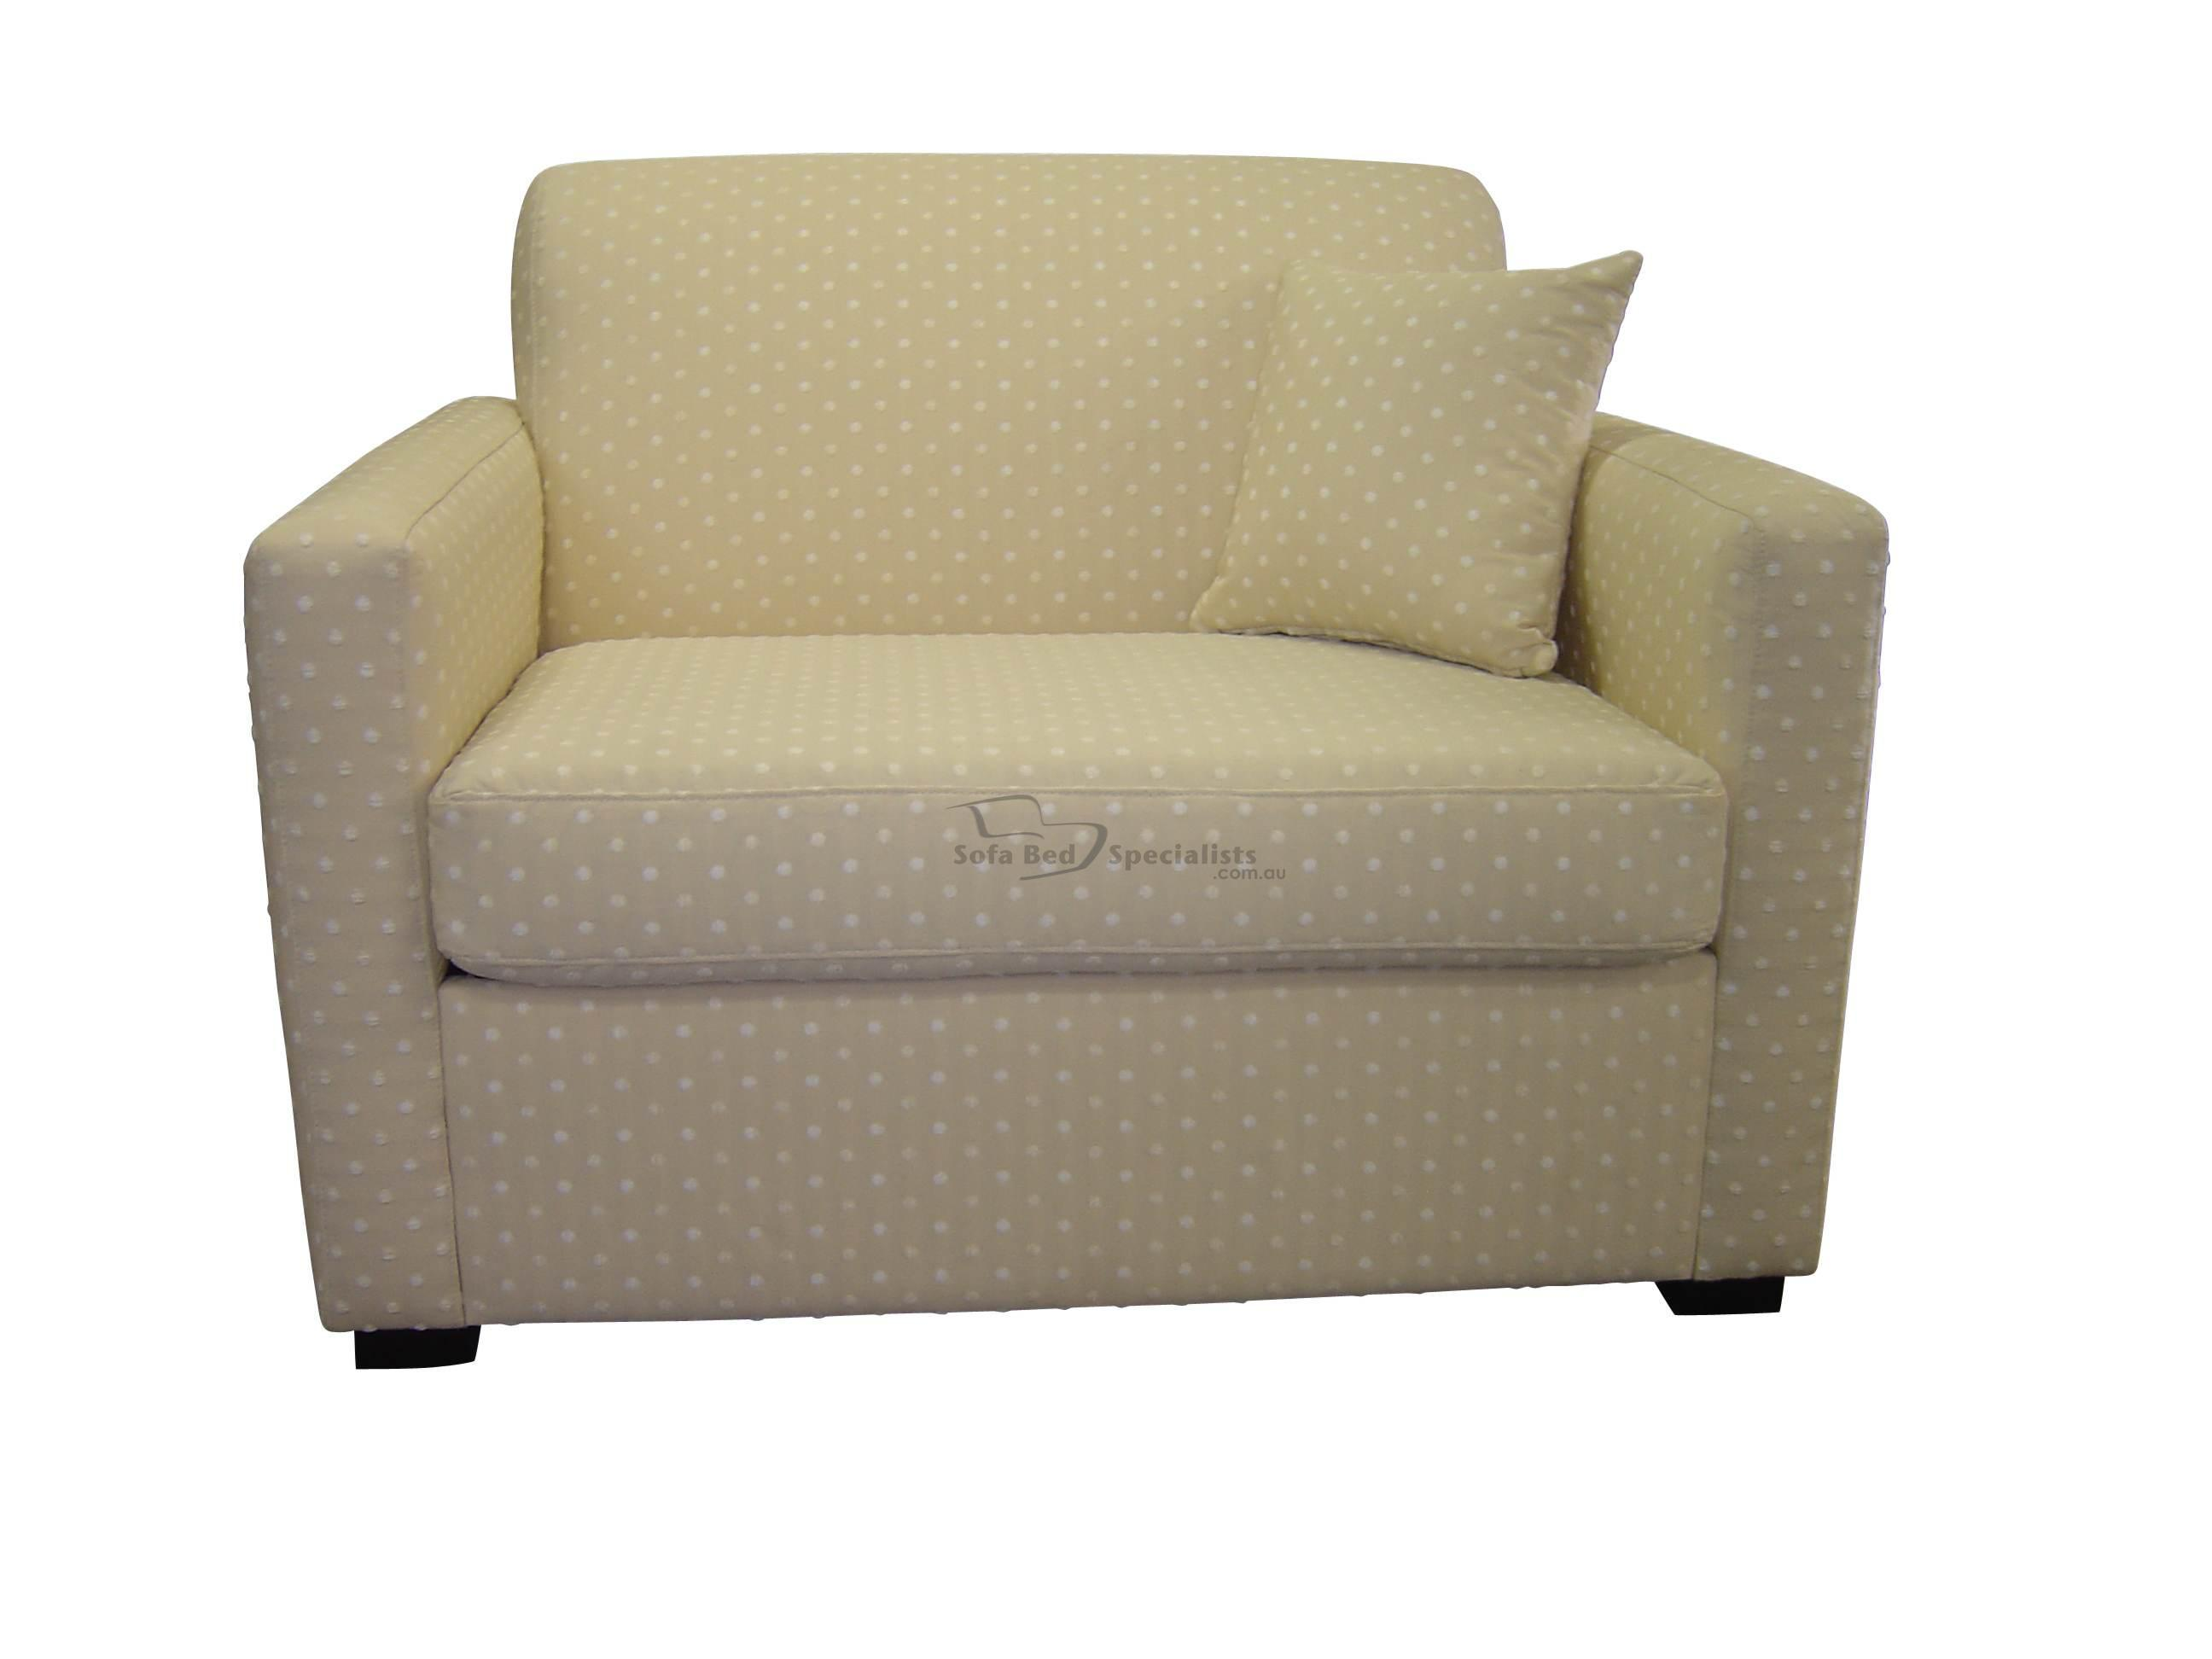 Single Chair Bed Chair Sofabed Bowman Sofa Bed Specialists